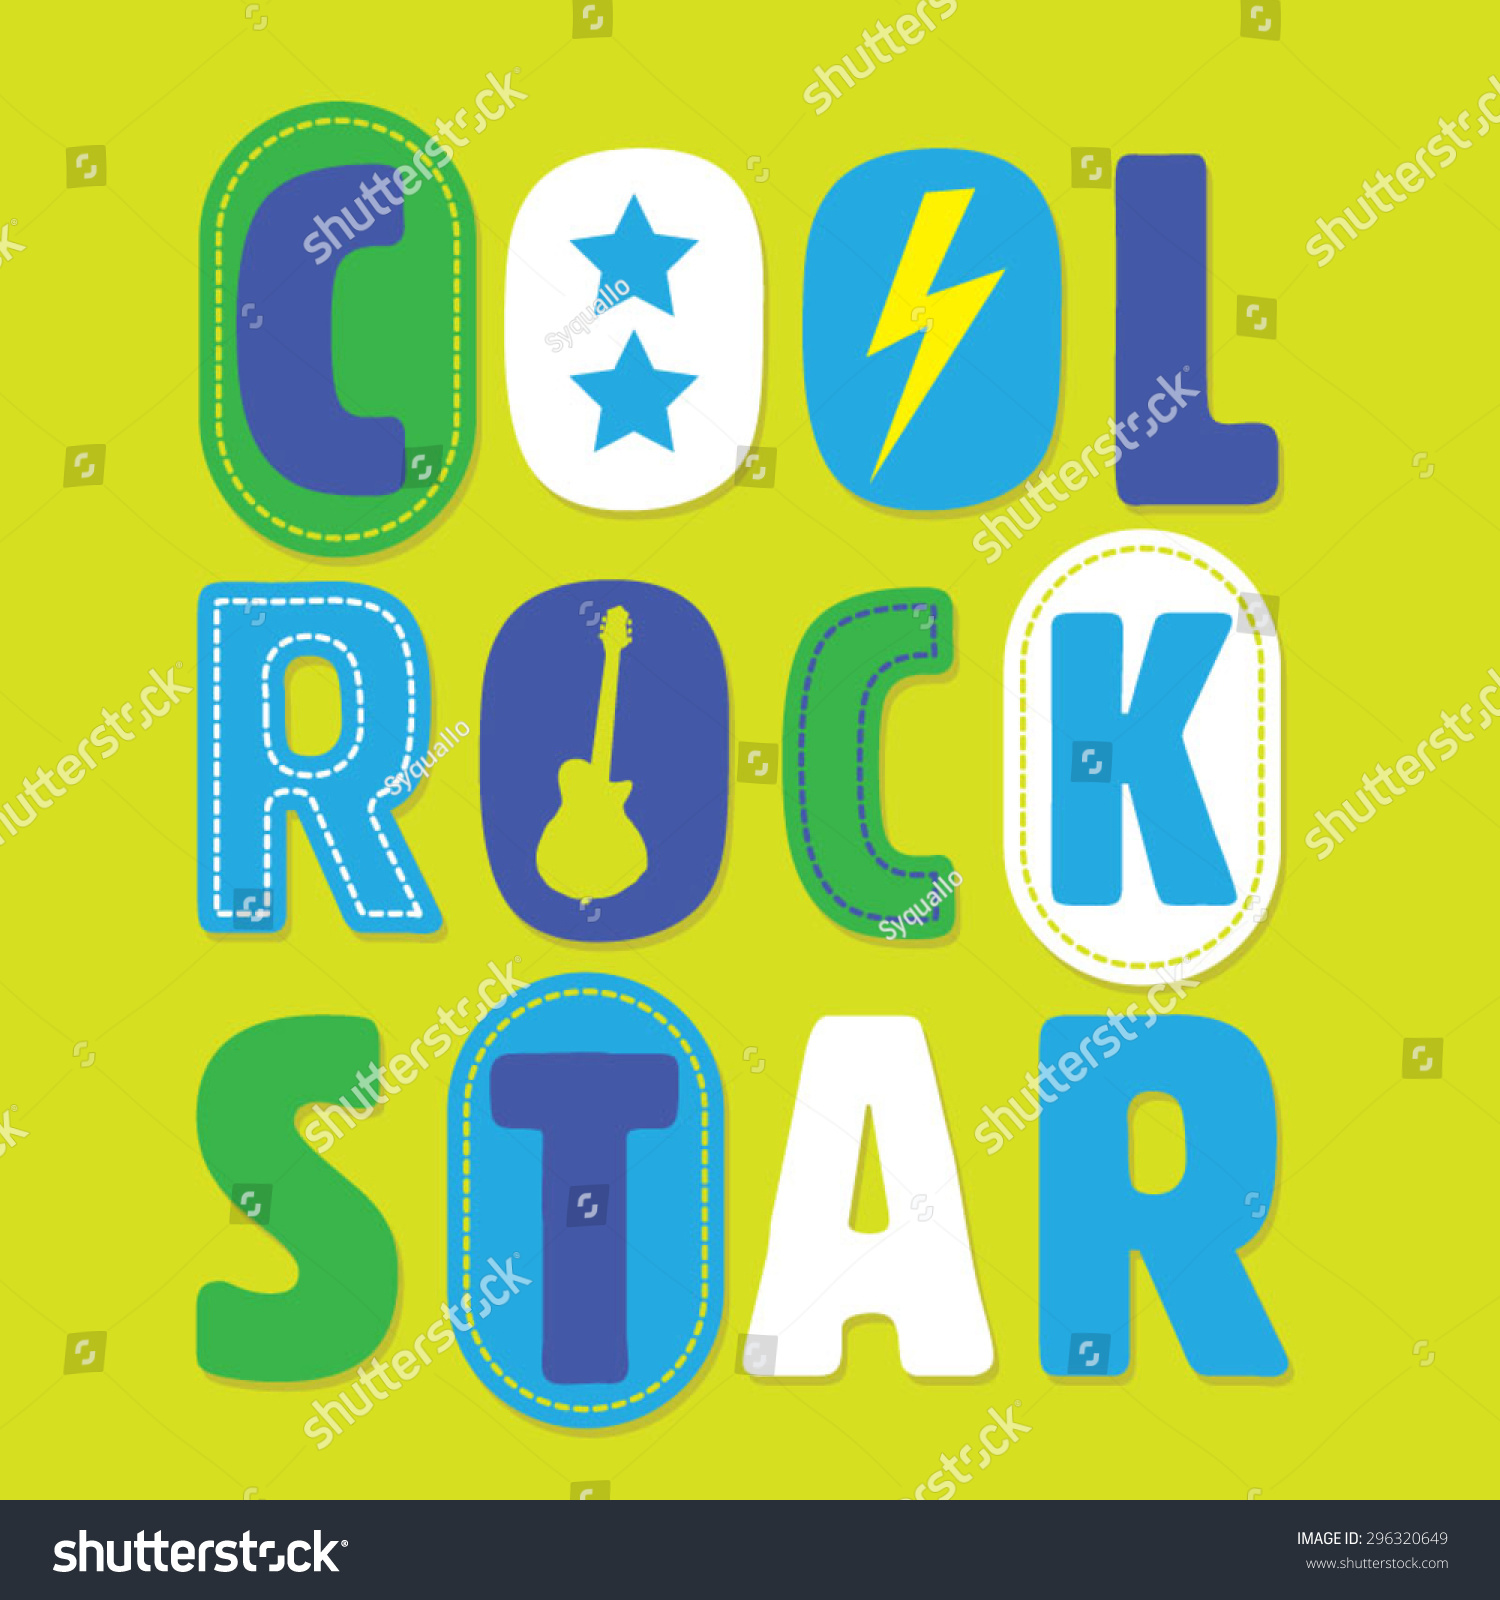 Image Result For Free Music Rock